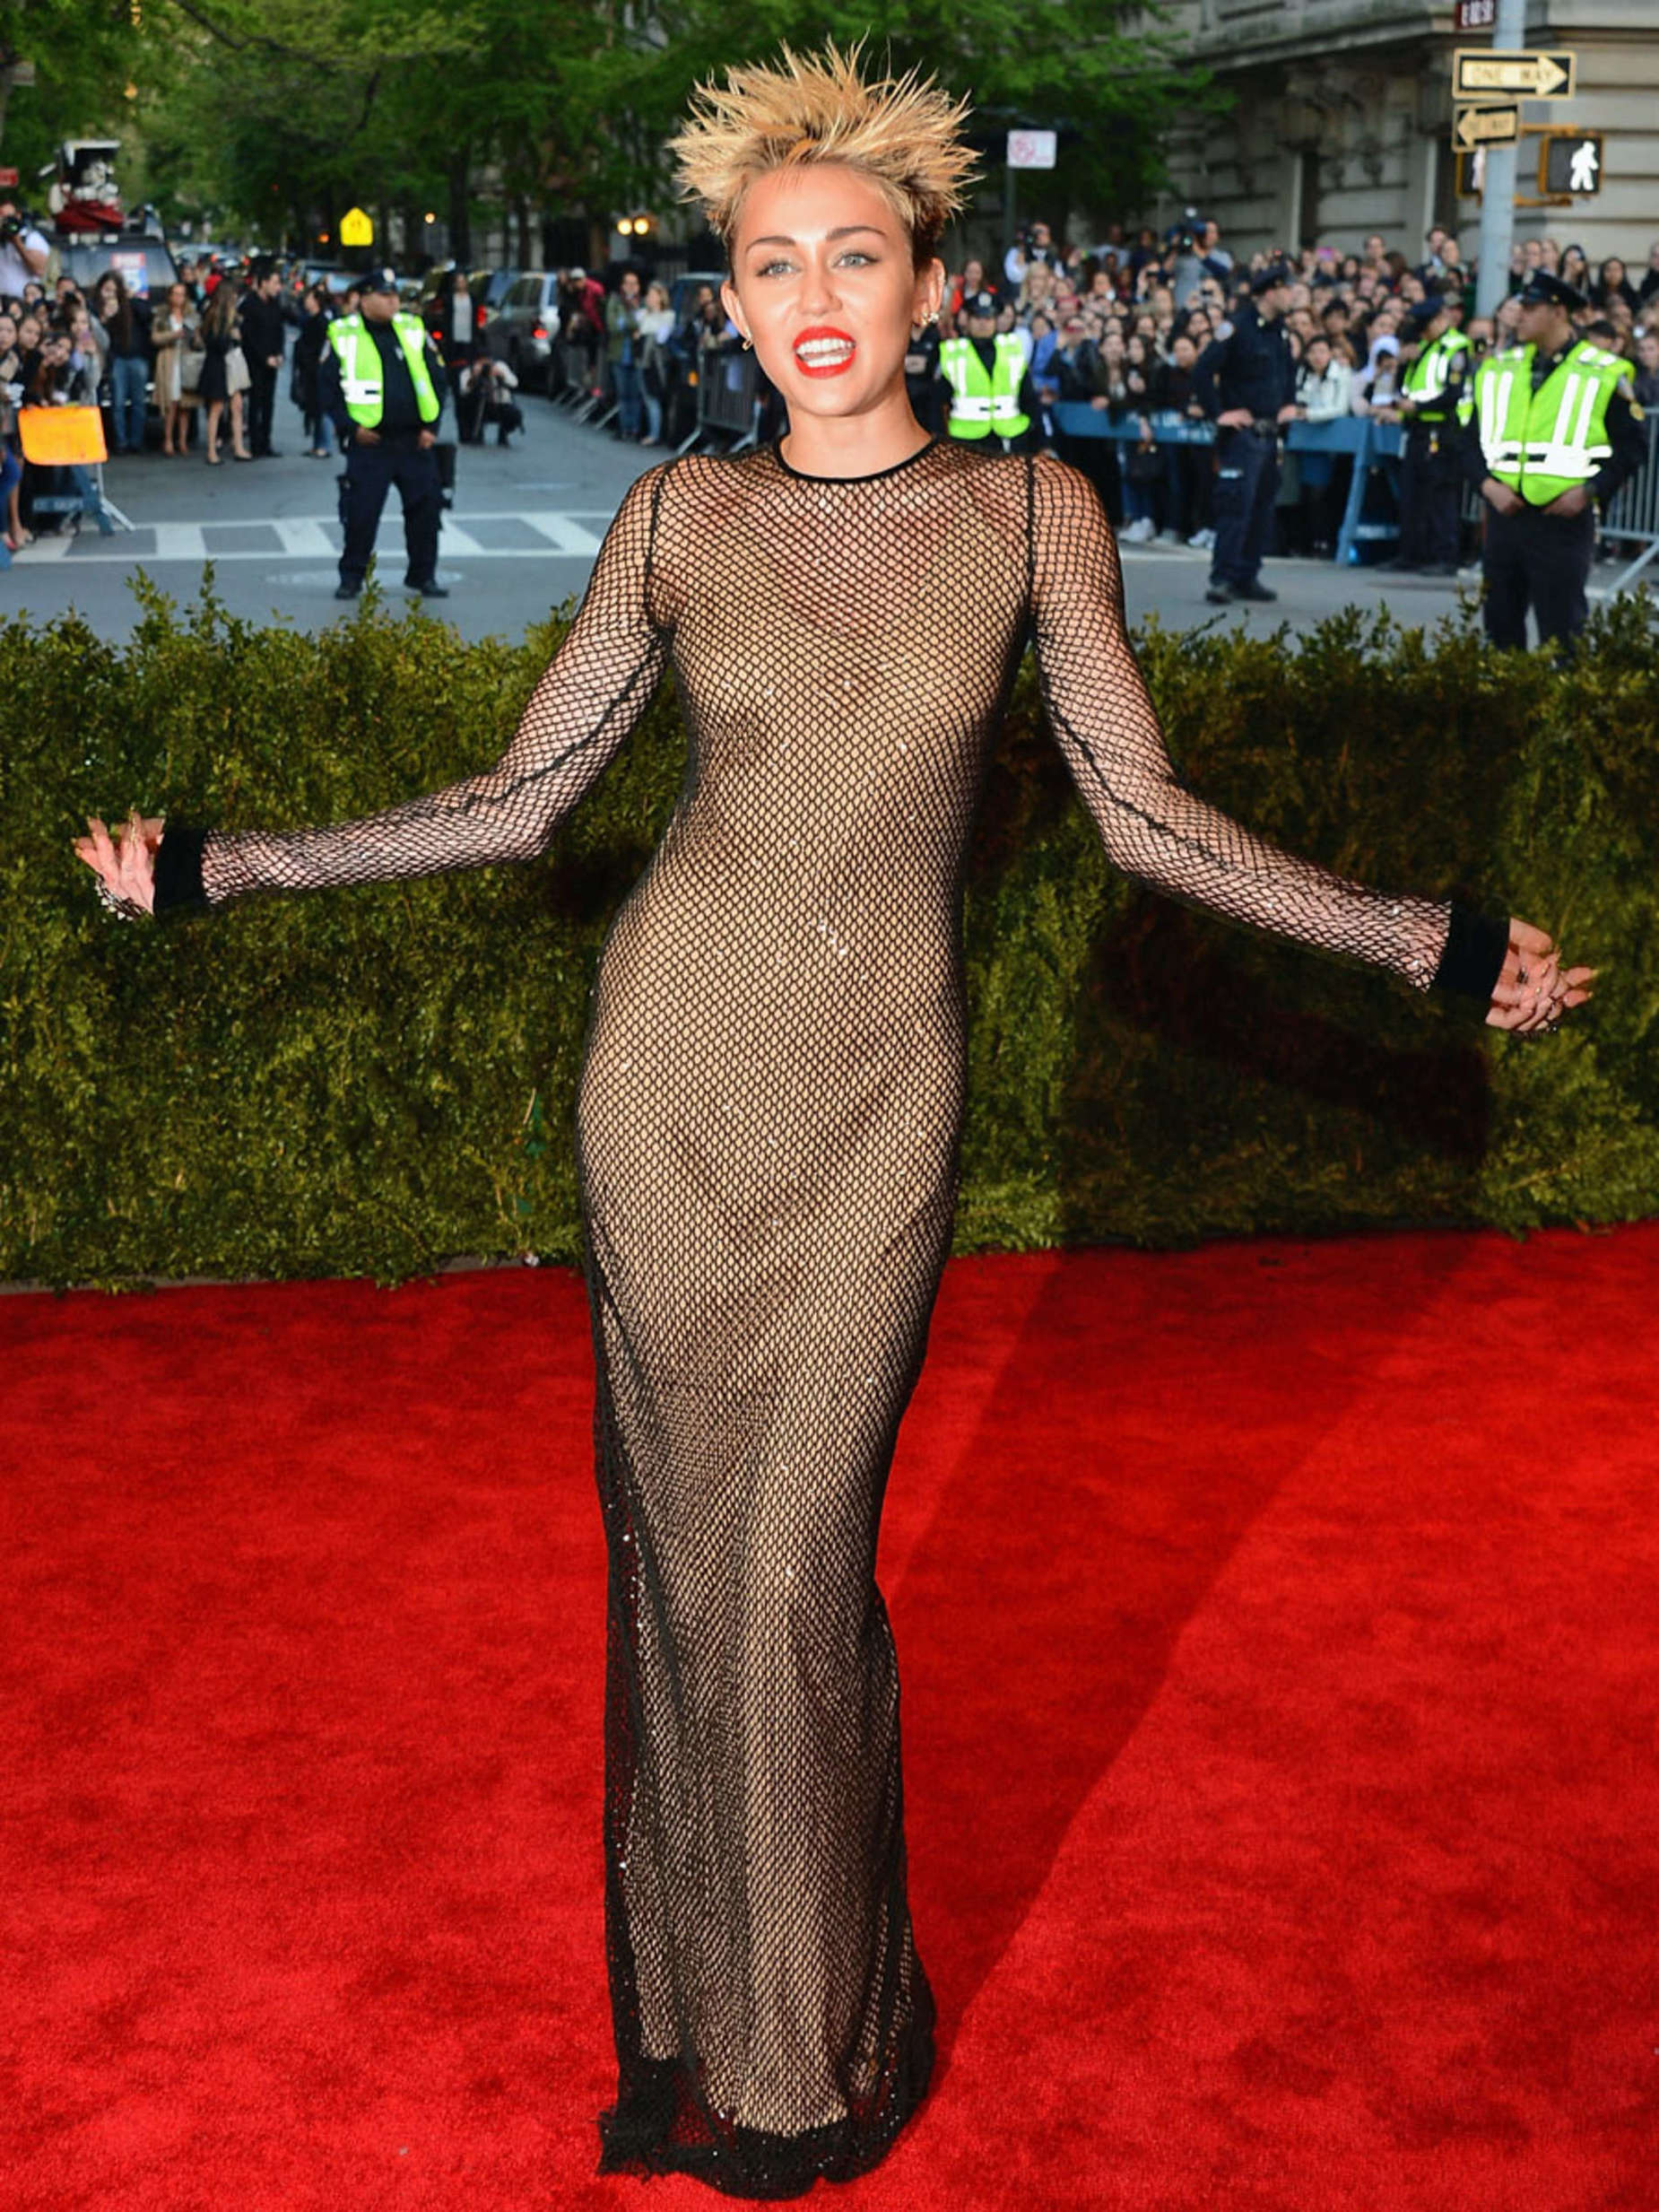 Back to post Miley Cyrus – 2013 Met Gala in NYC